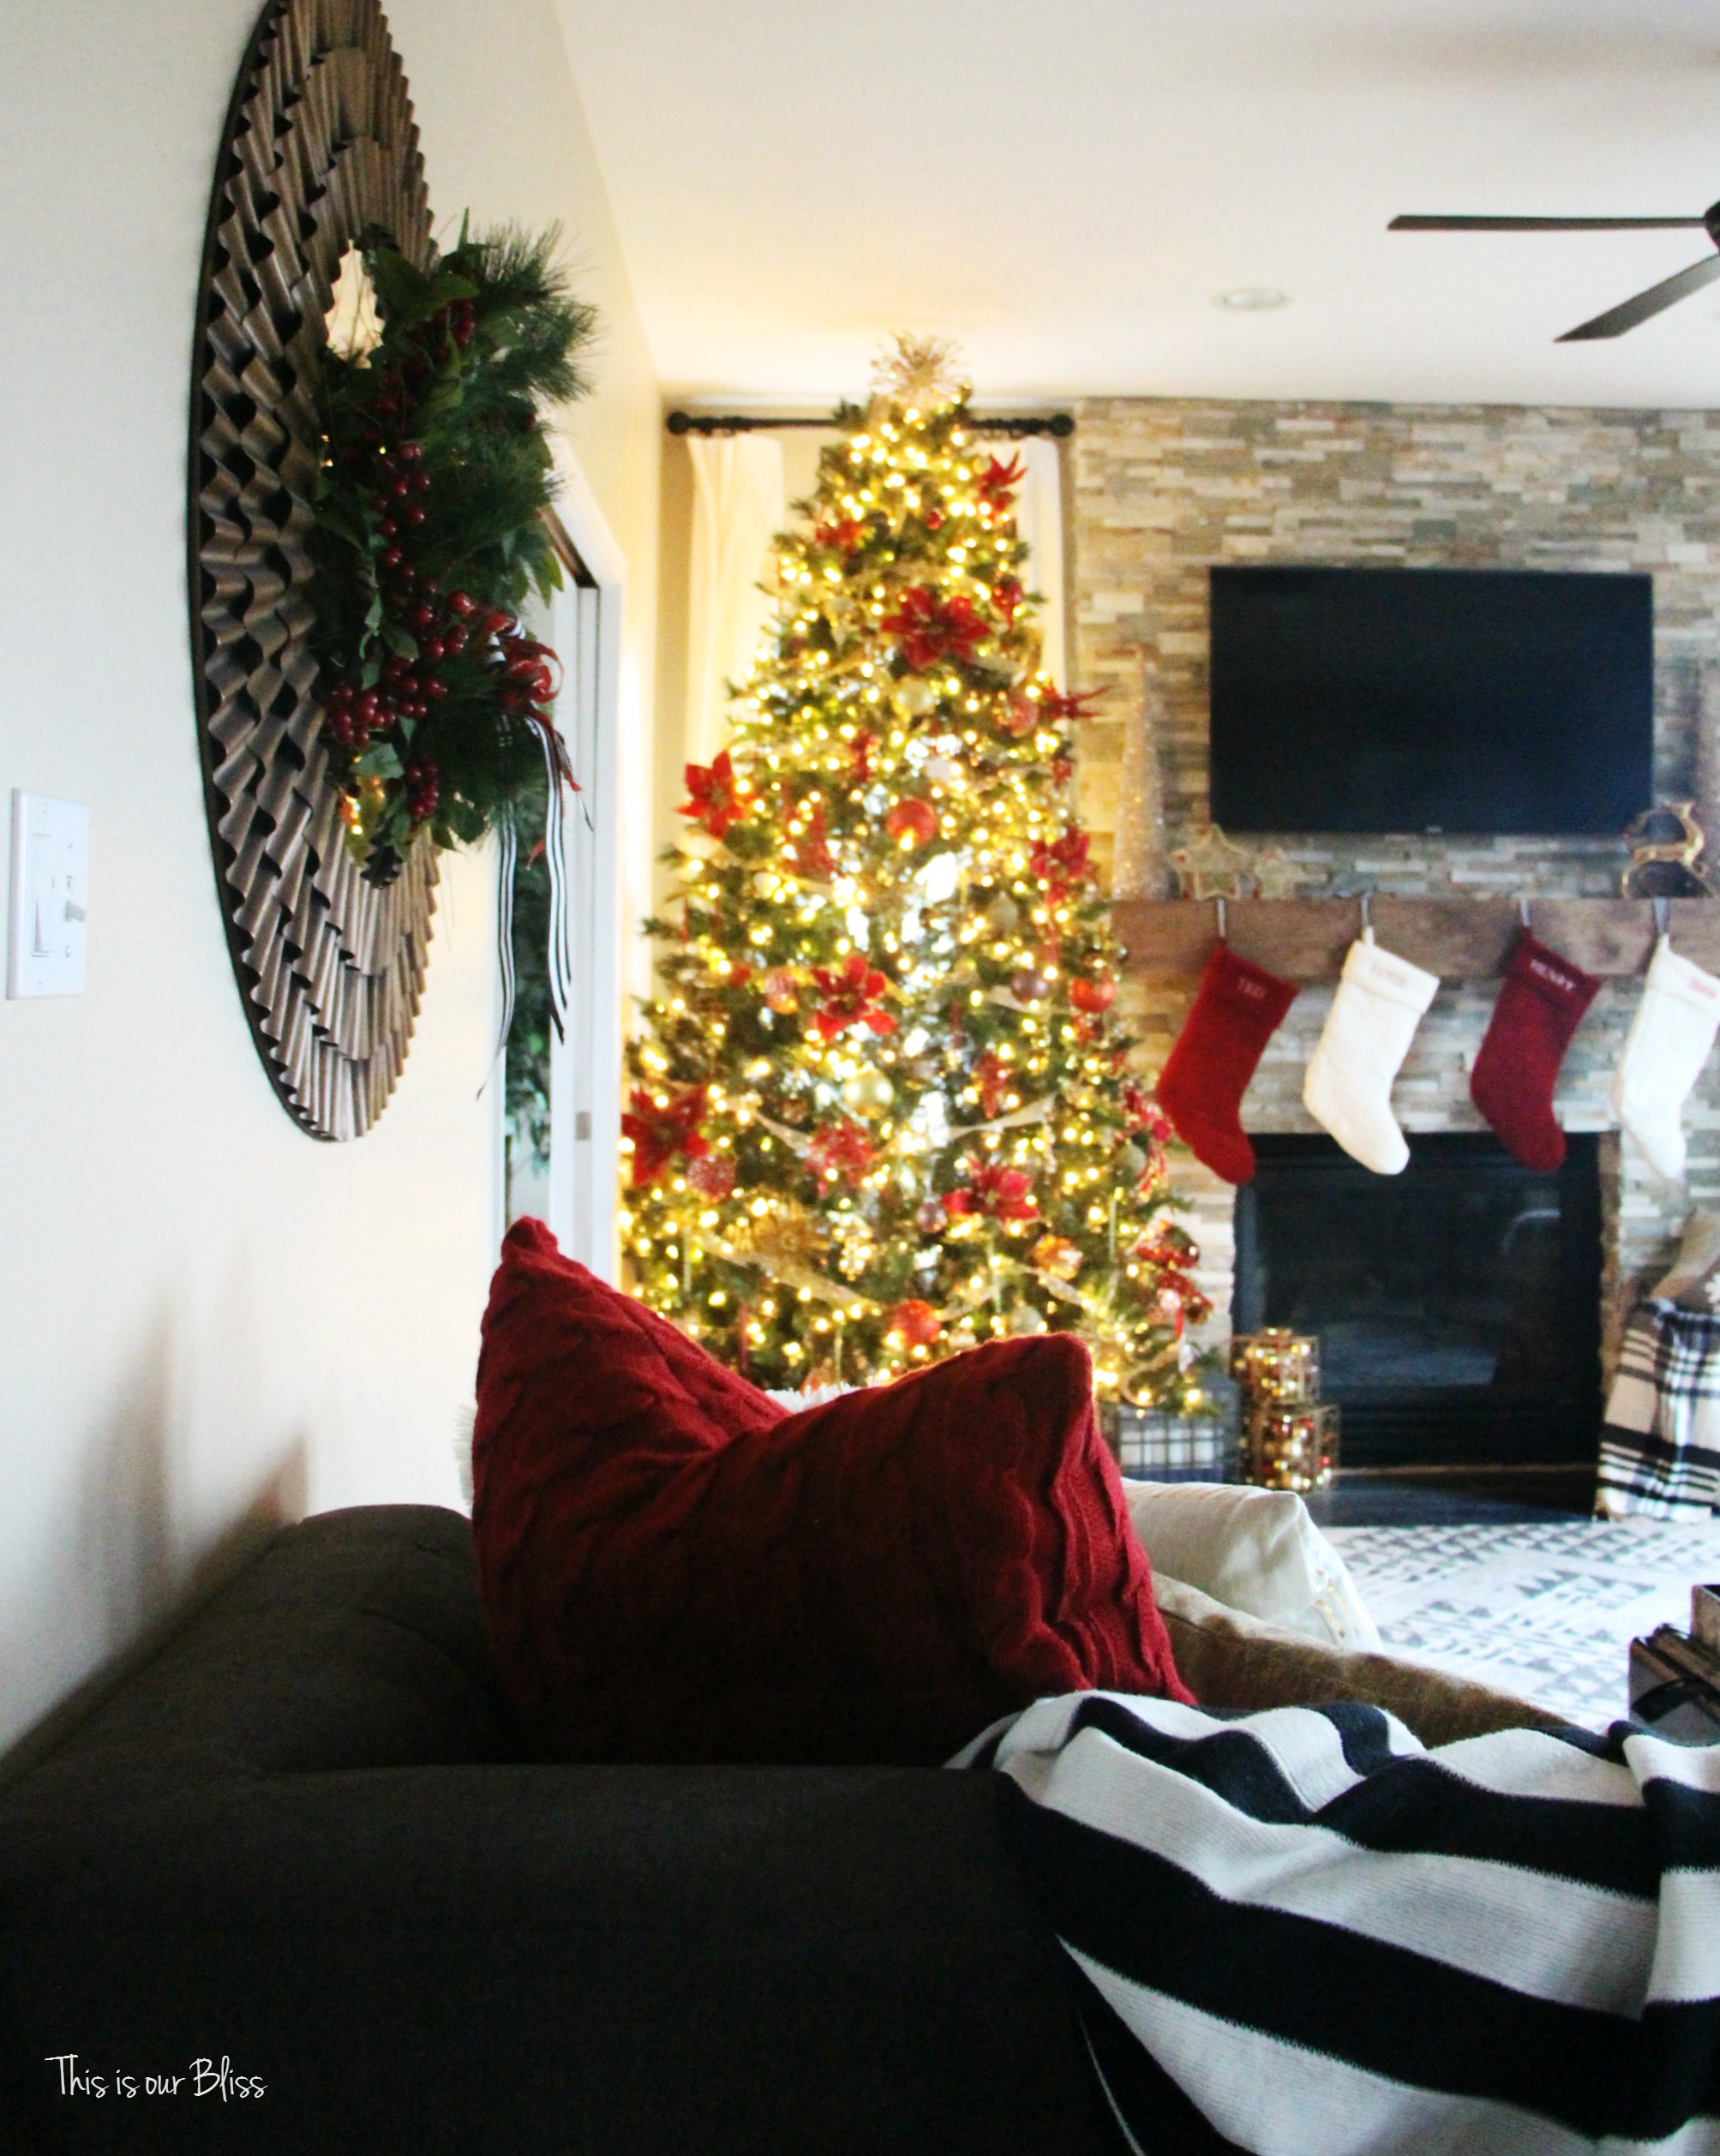 Uncategorized christmas decorations amp holiday decorations - So Since This House Is Decked And No One Else Will Be Seeing It Until The 25th I Thought I D Keep Sharing With You Let S Take A Peek Into Another Room Of